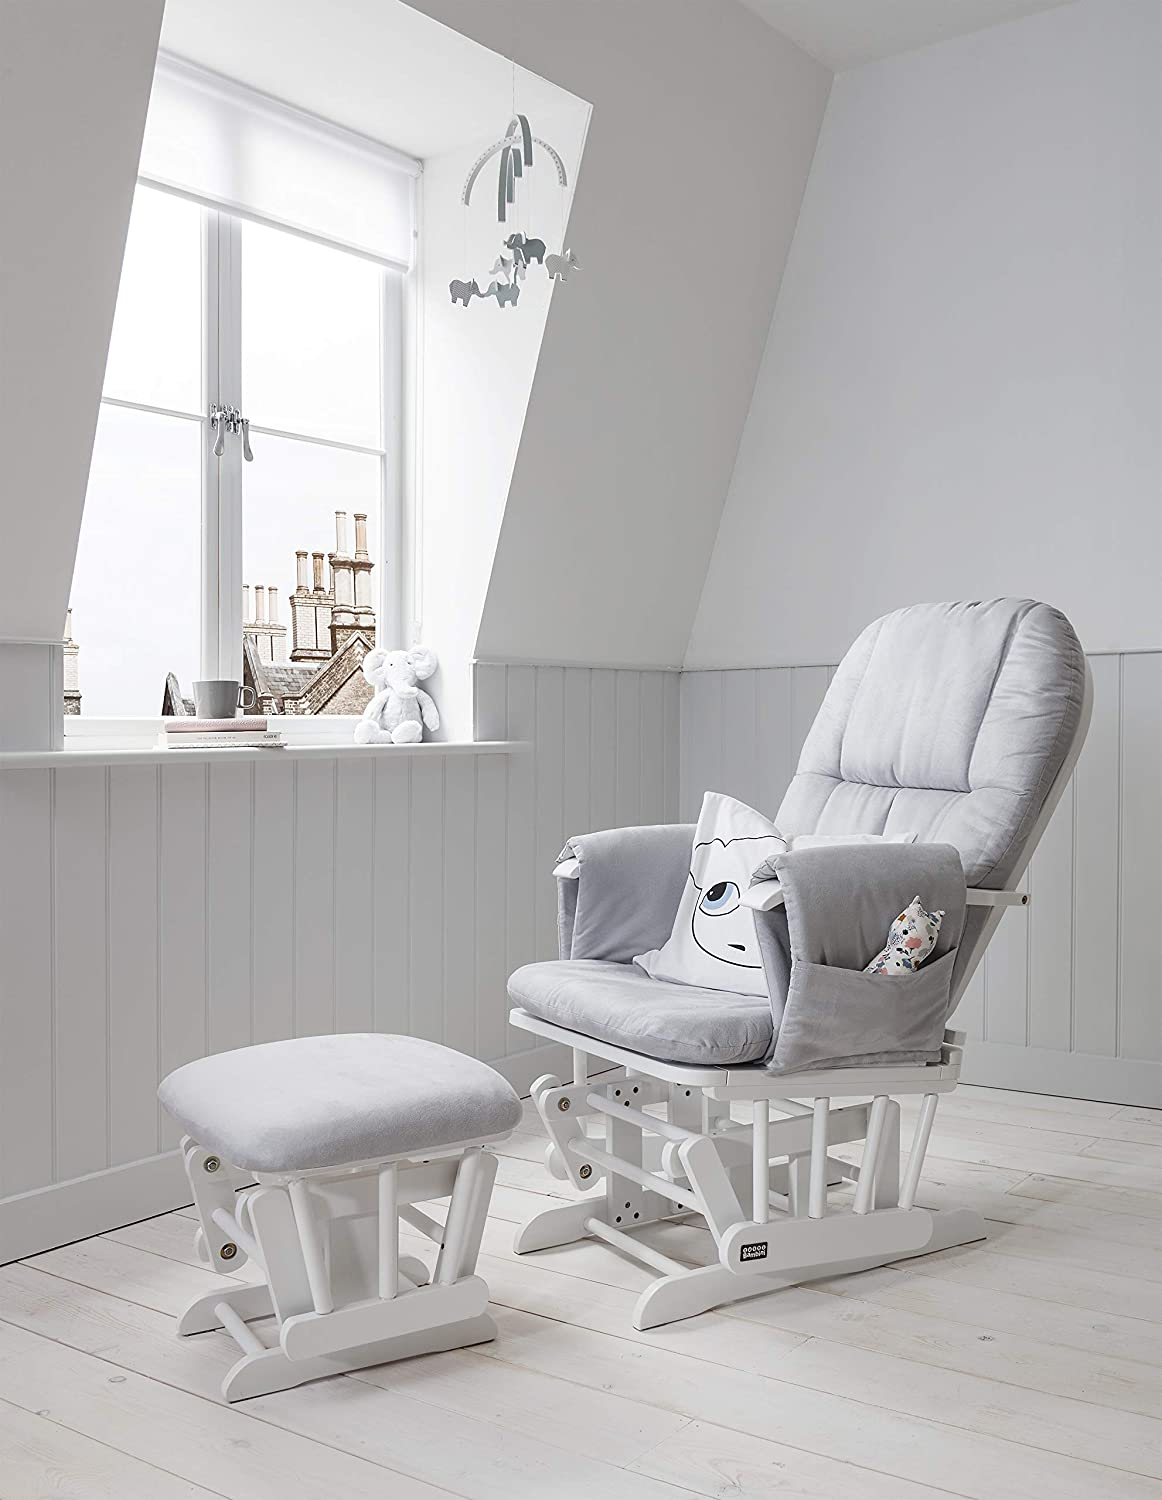 Tutti Bambini GC35 Padded Smooth Glider Baby Nursing Chair & Foot Stool with 3 Reclining Positions – White Wood Frame with Grey Soft Fabric Cushions